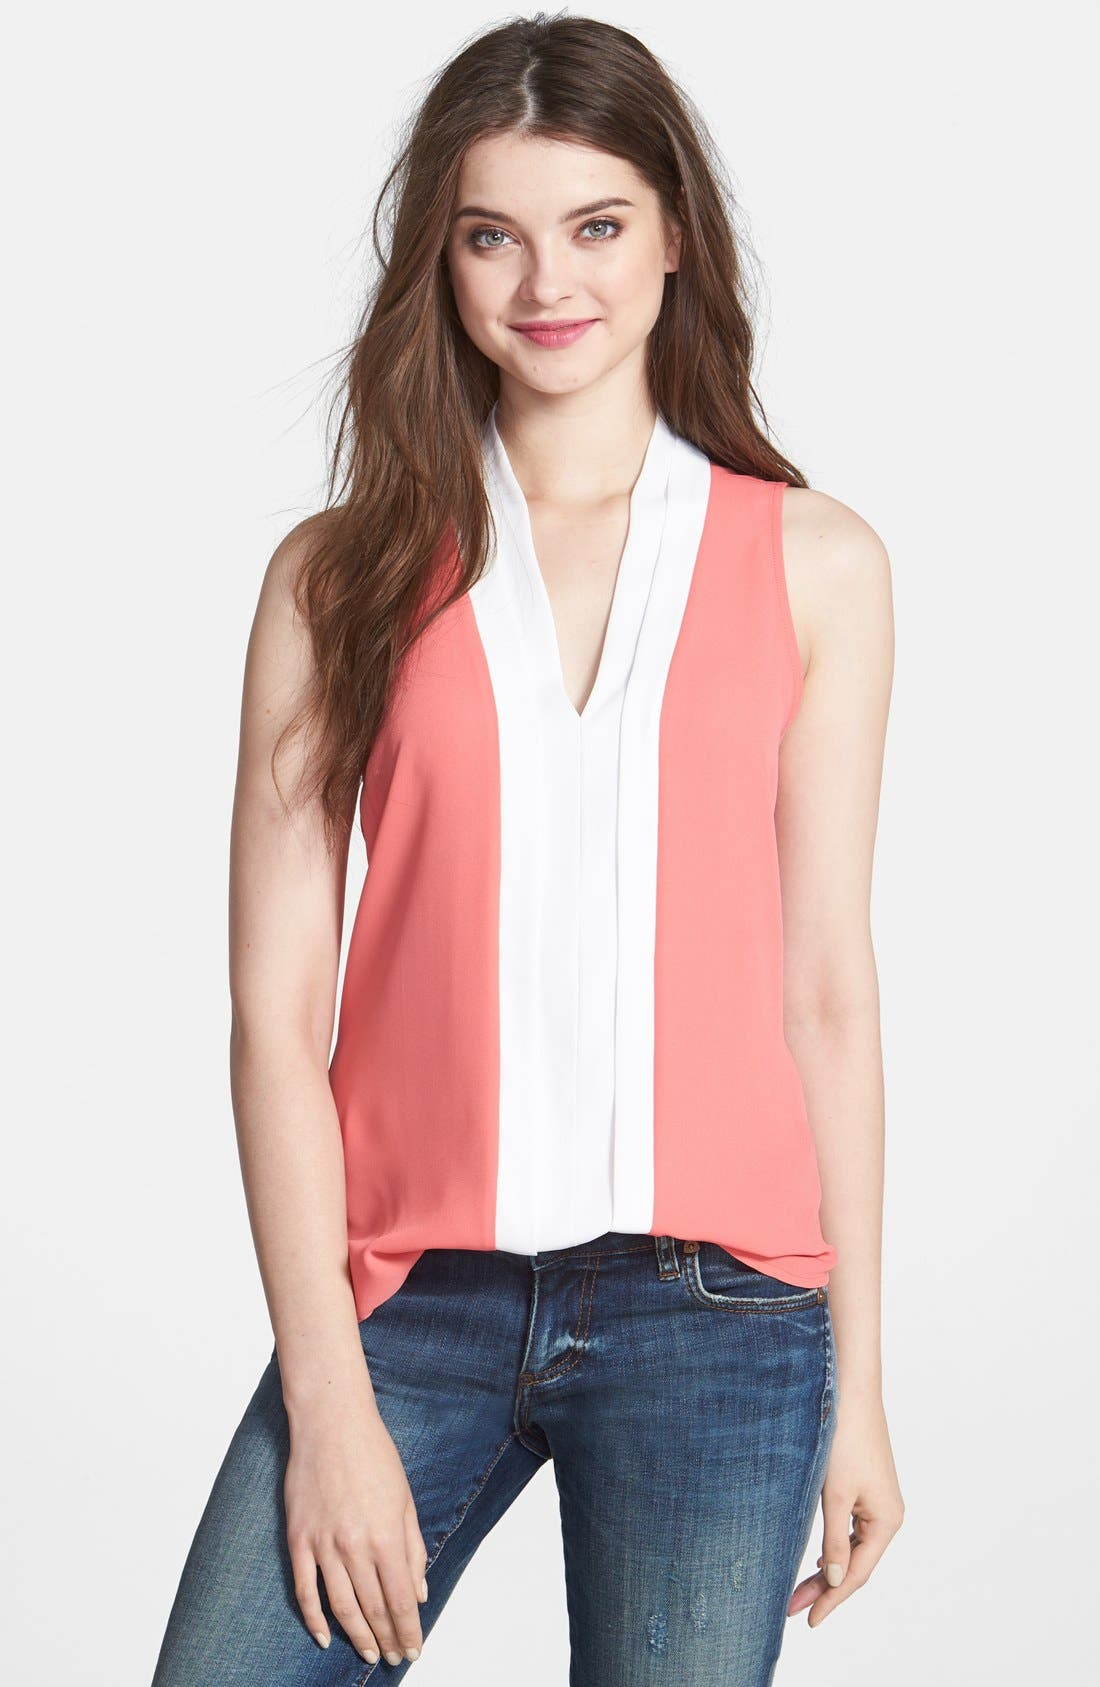 Alternate Image 1 Selected - Bellatrix Keyhole Back Colorblock Top (Regular & Petite)